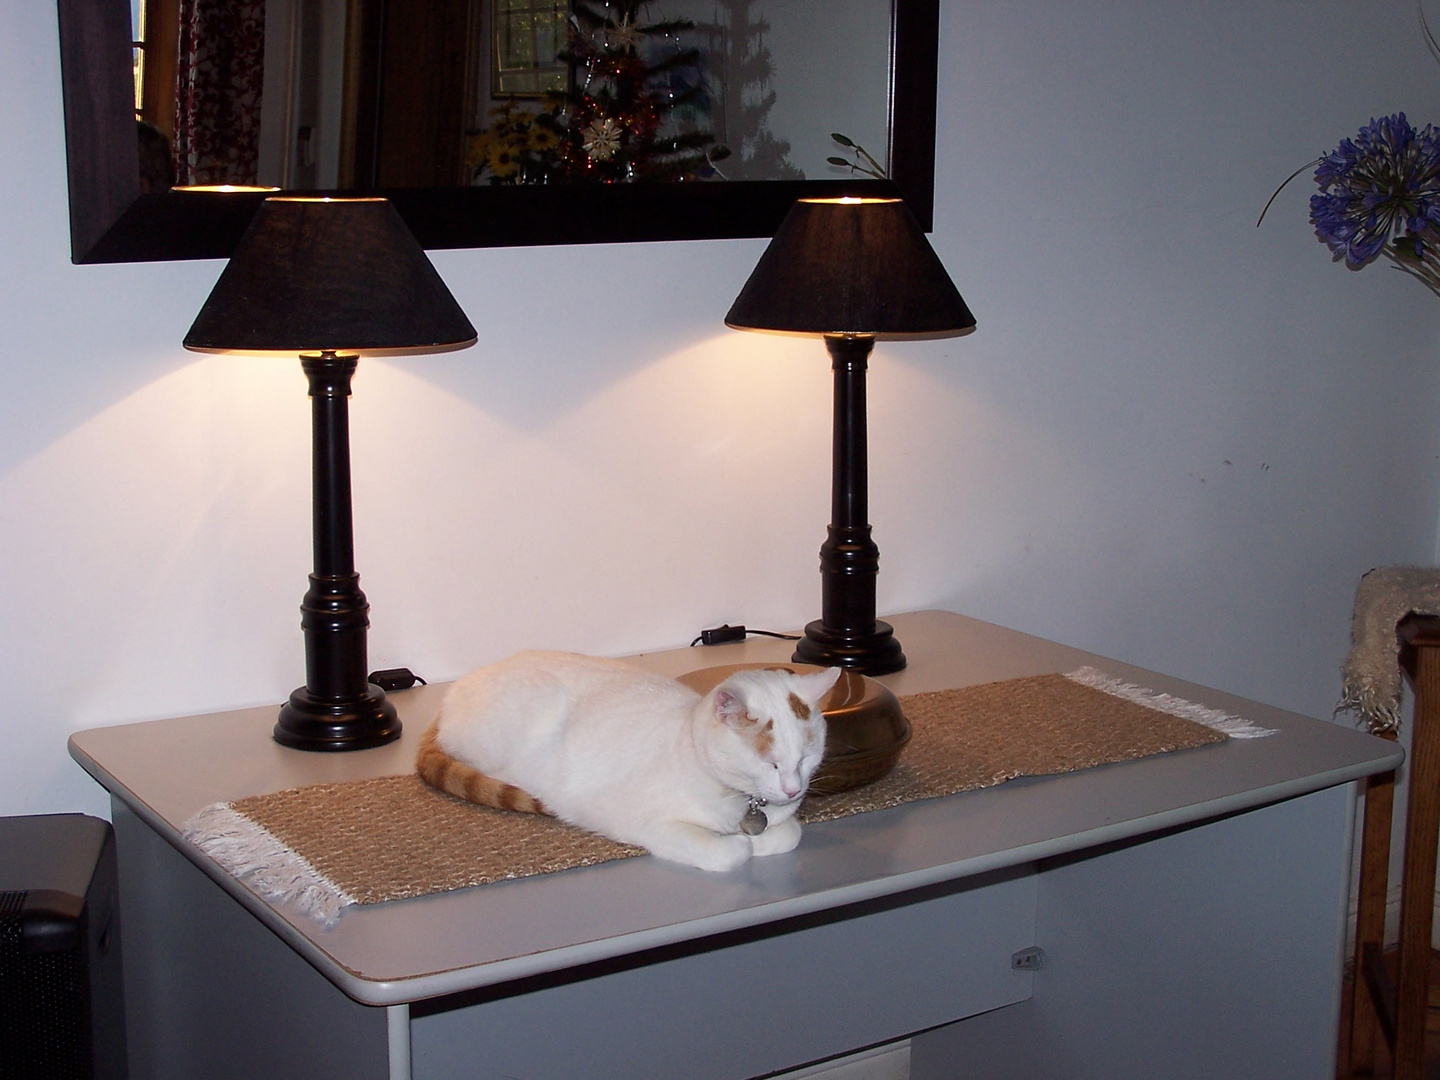 Cat on the table